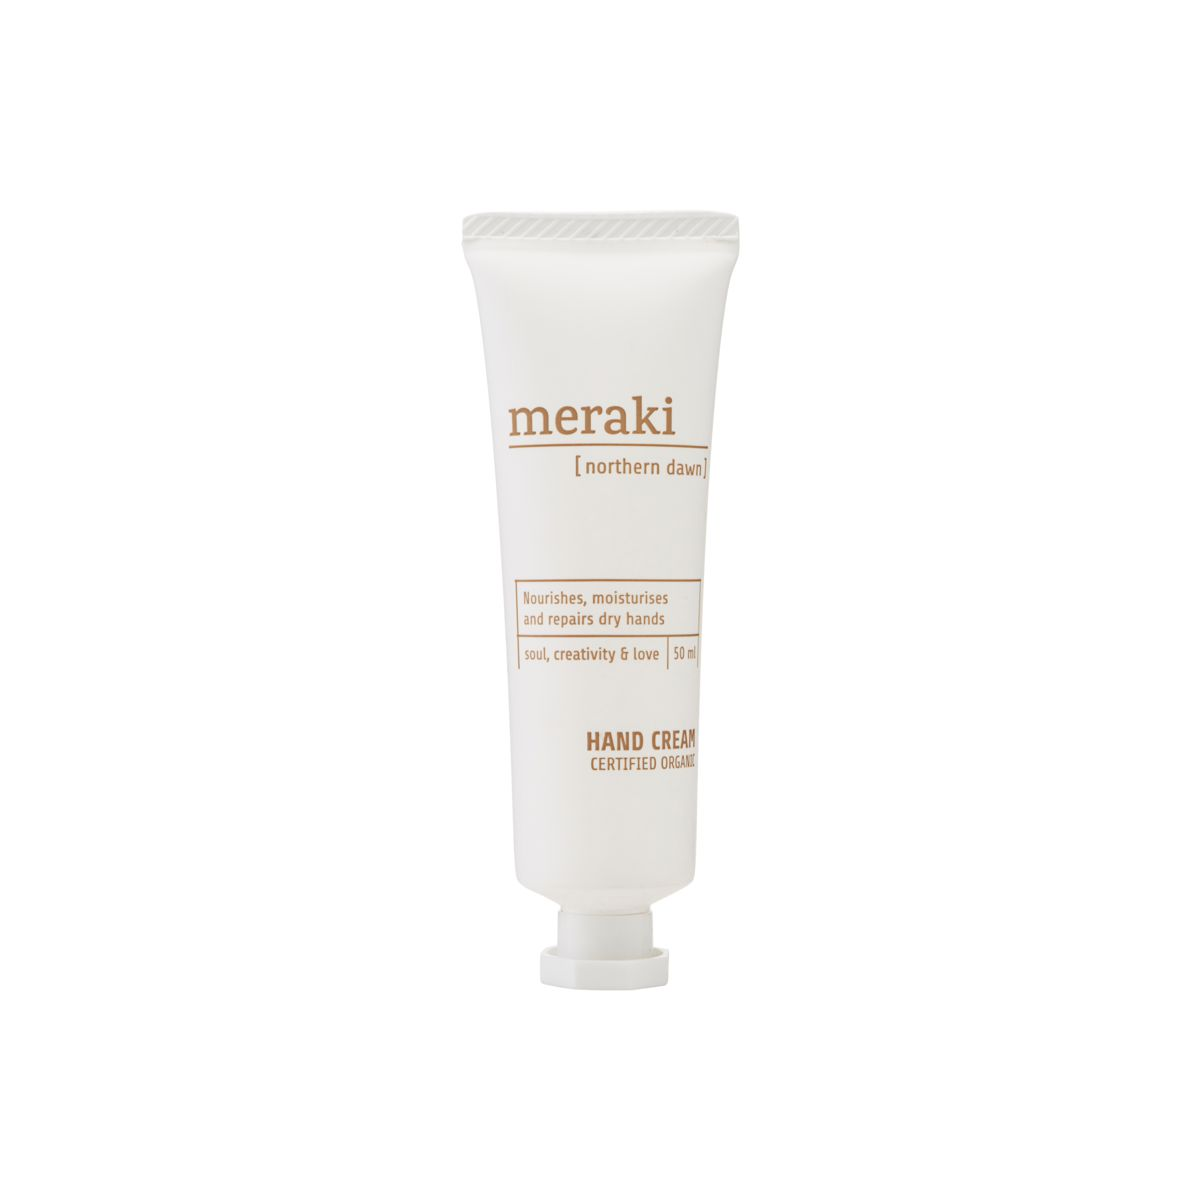 Meraki Northern dawn Hand Cream